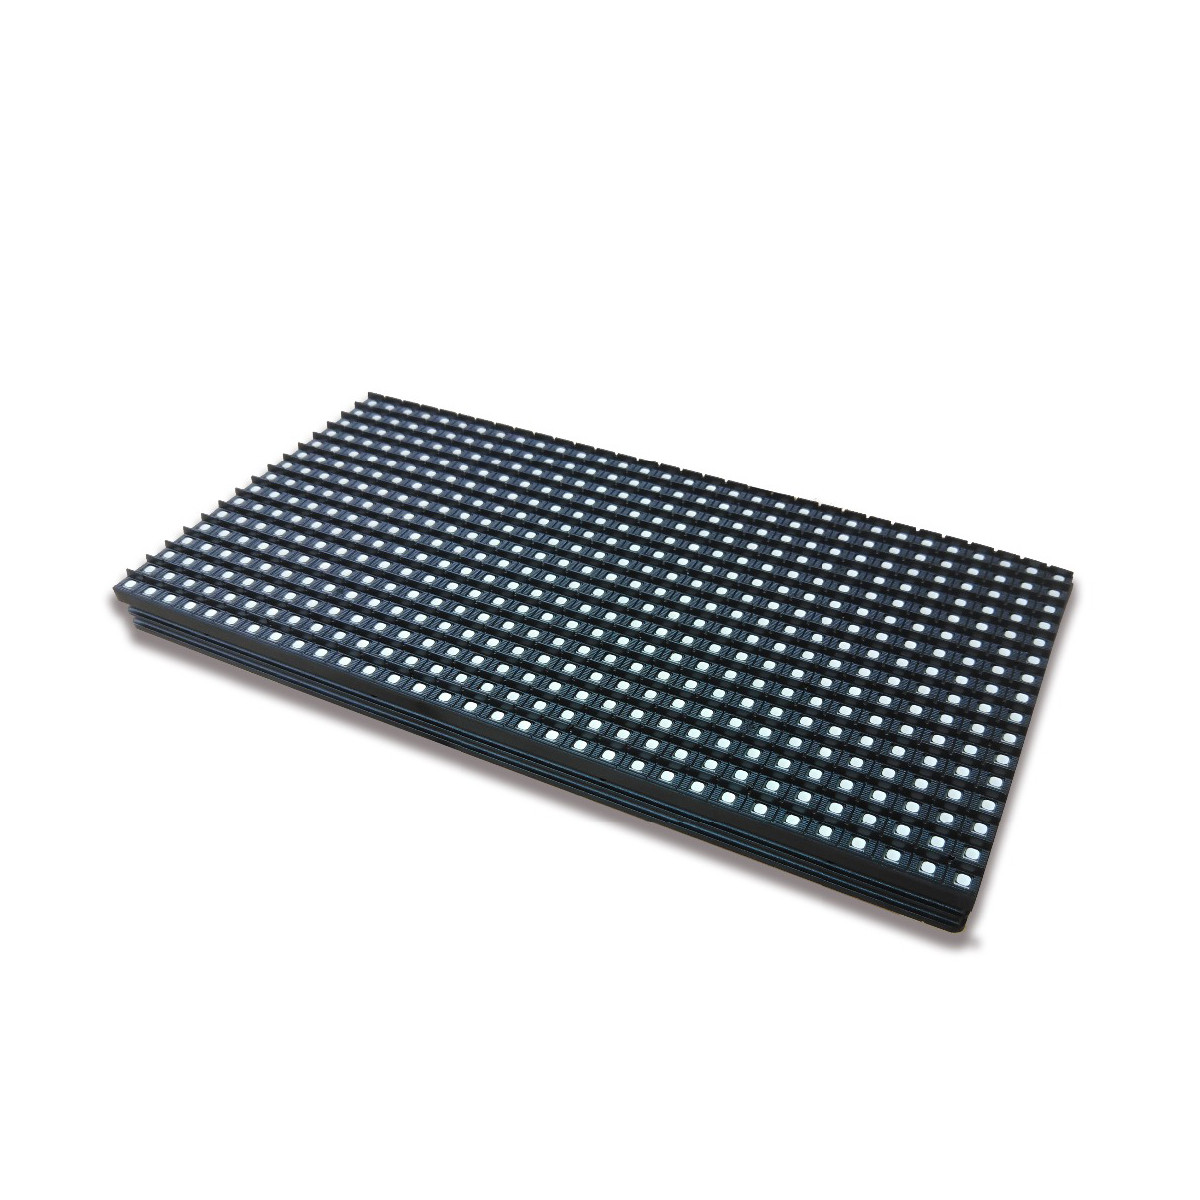 P10 Outdoor SMD LED Display Module 320*160mm SMD1921 5000cd/㎡ Brightness 1920Hz High Refresh